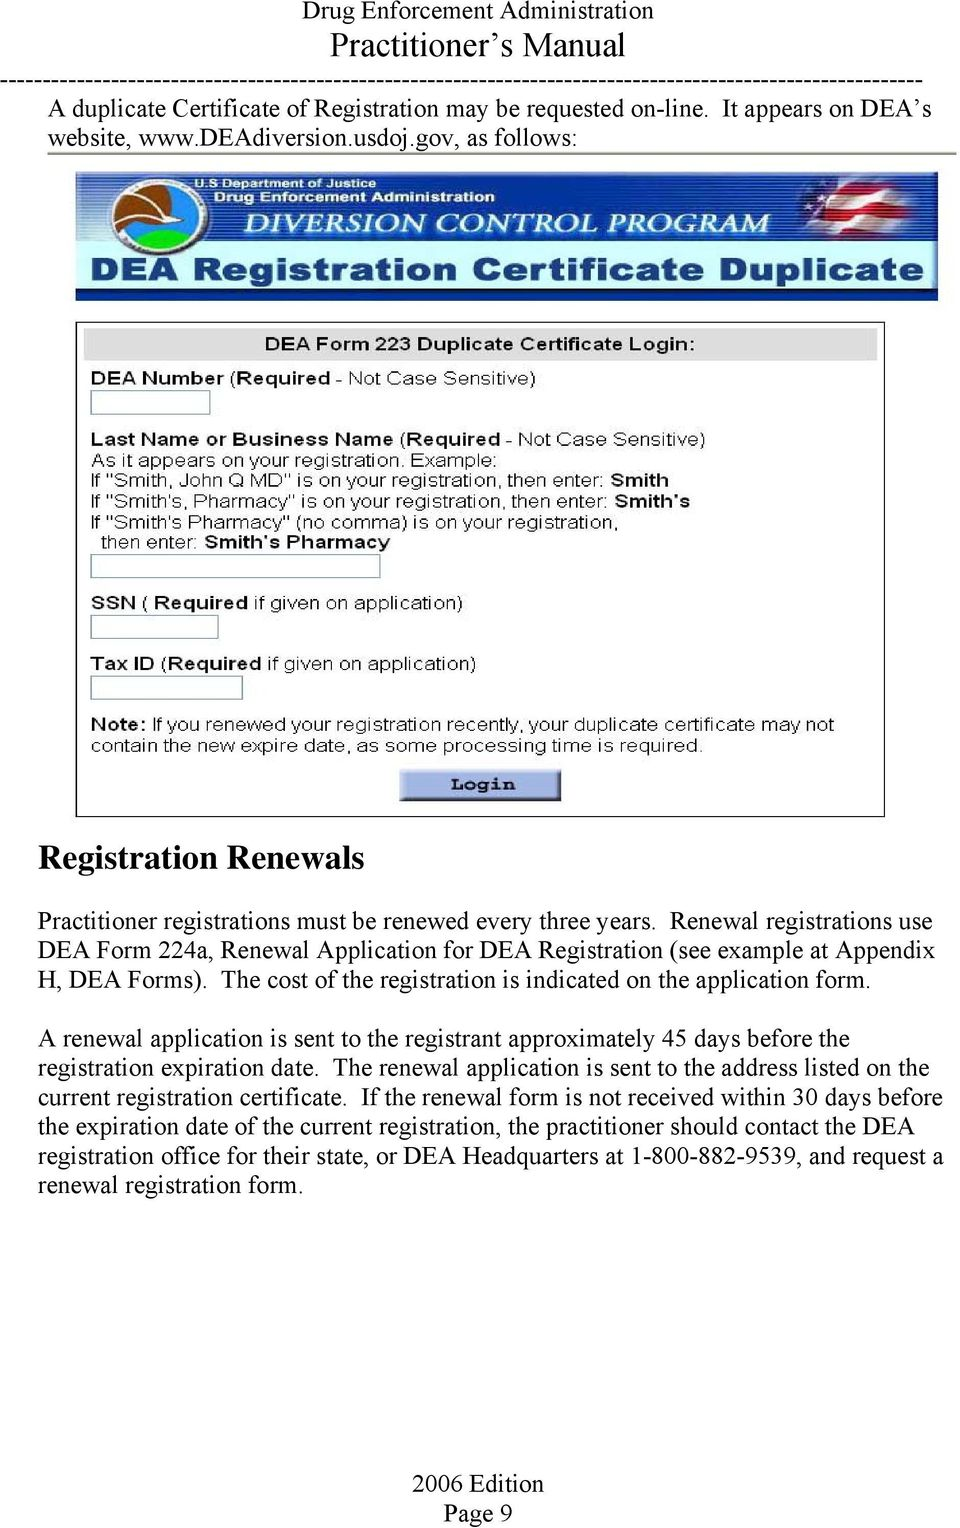 Renewal registrations use DEA Form 224a, Renewal Application for DEA Registration (see example at Appendix H, DEA Forms). The cost of the registration is indicated on the application form.